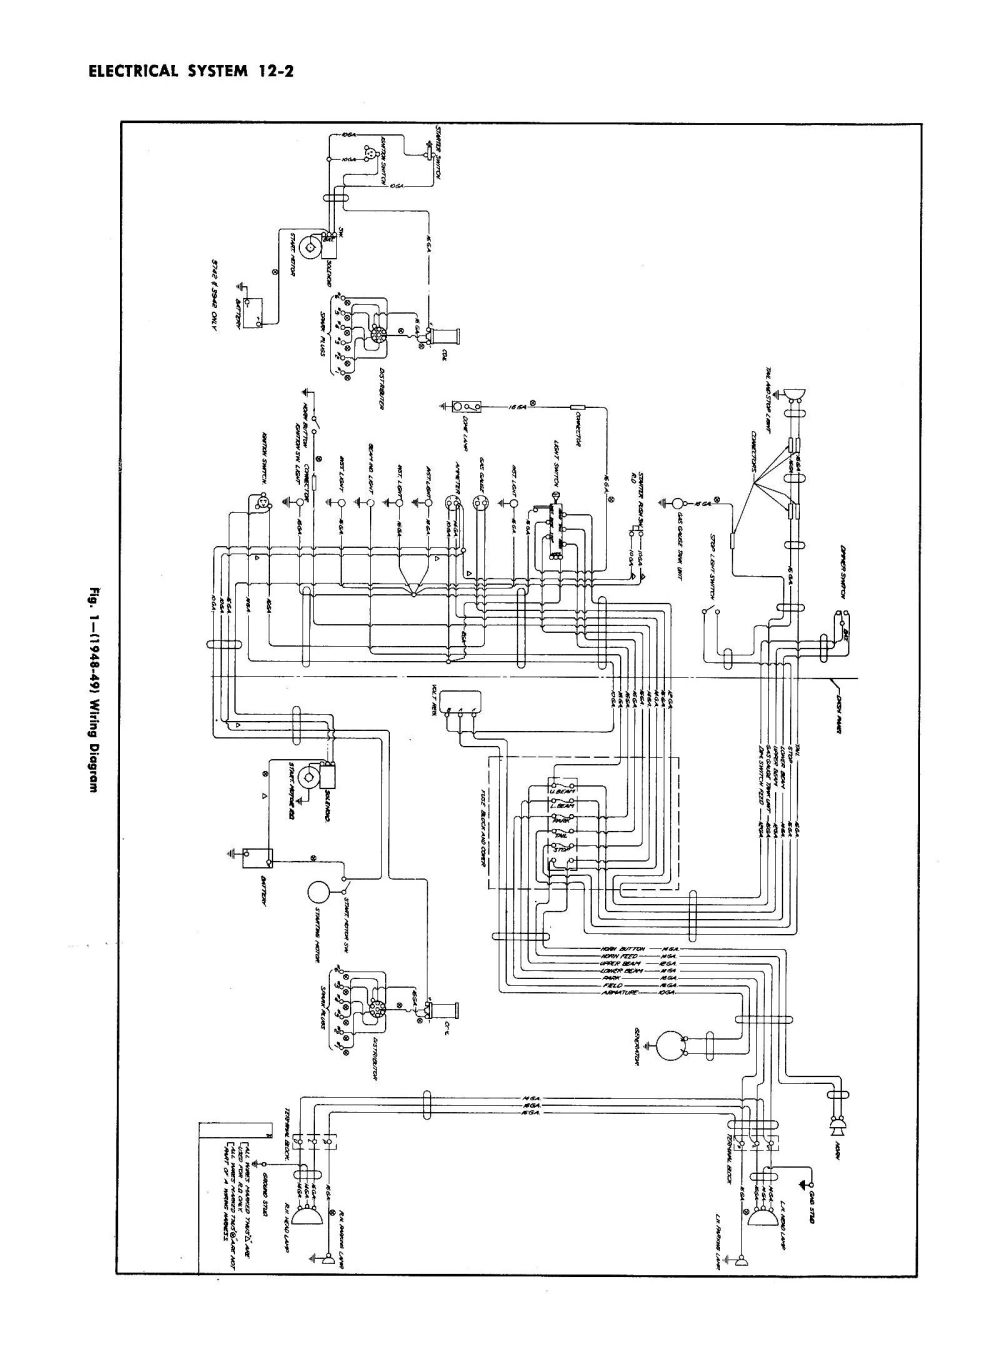 medium resolution of wiring diagram for 1960 gmc truck wiring diagram log 1968 gmc truck wiring diagram gmc truck wiring